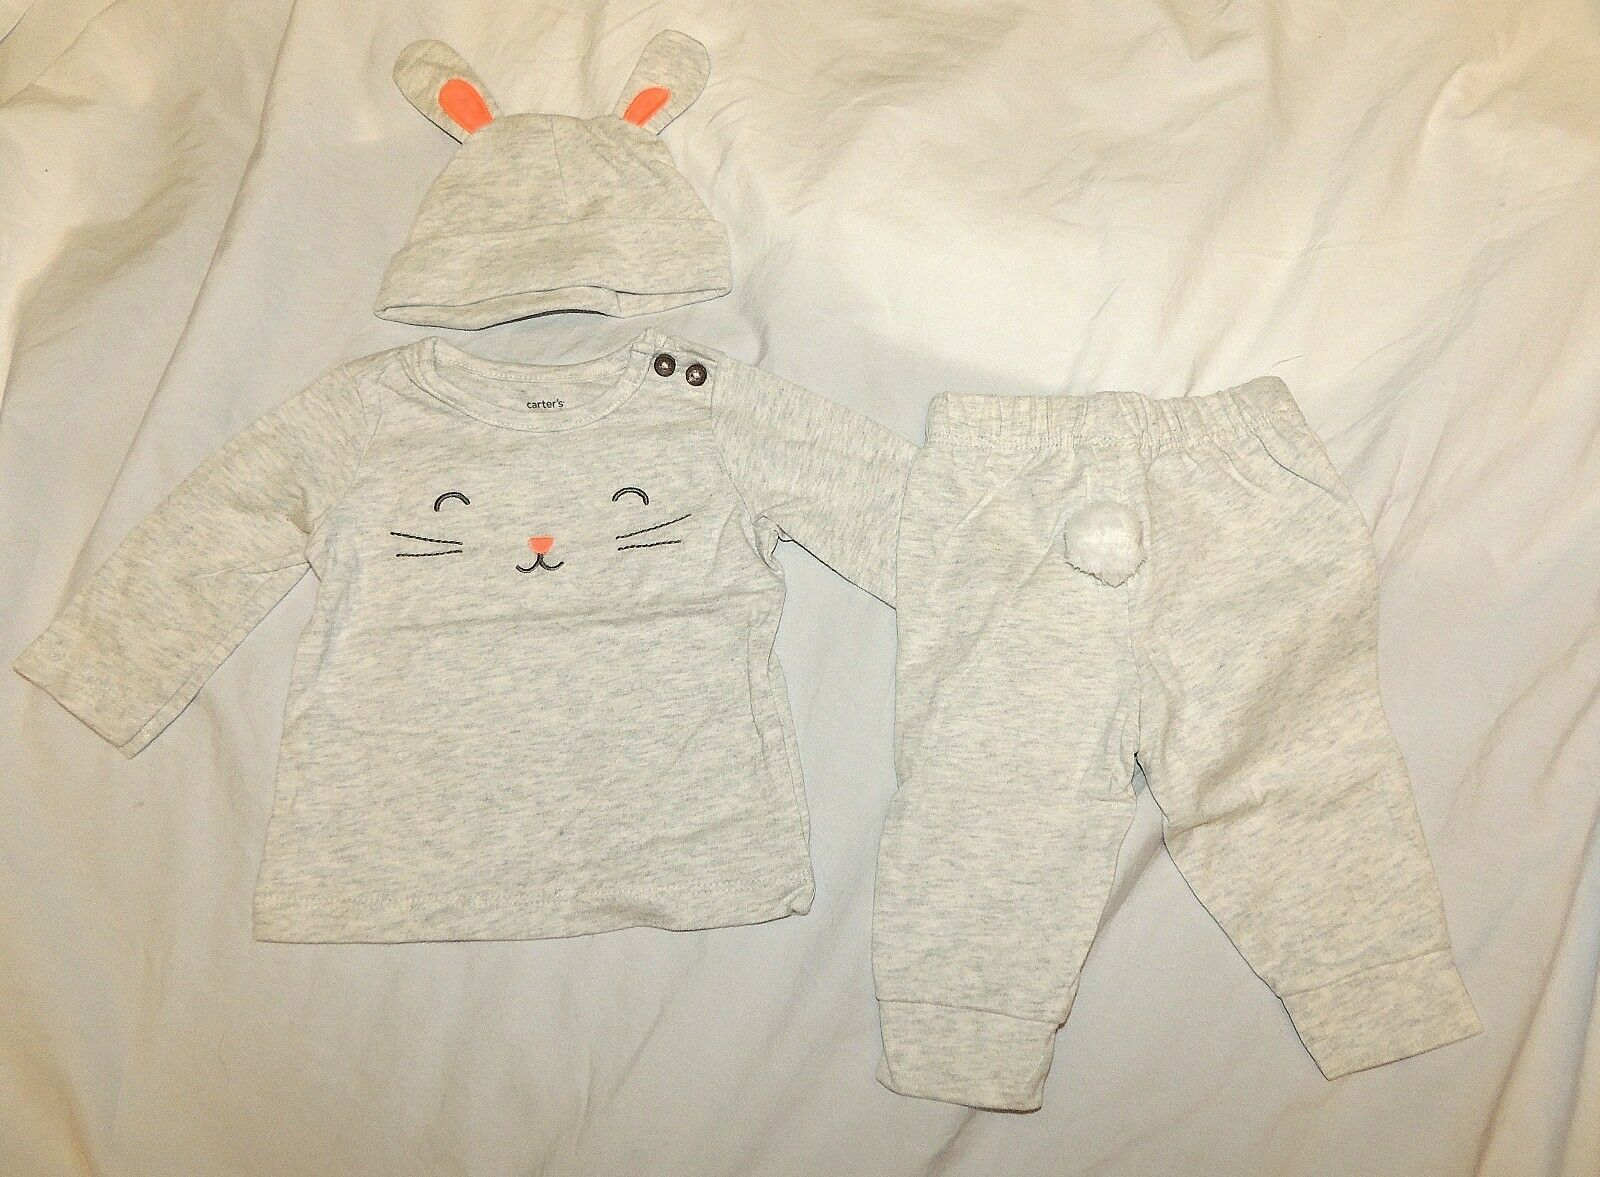 61428f3c70cd S l1600. S l1600. Previous. New Carters Baby Bunny Outfit Costume Unisex  Sizes 3 6 9 M Easter Halloween